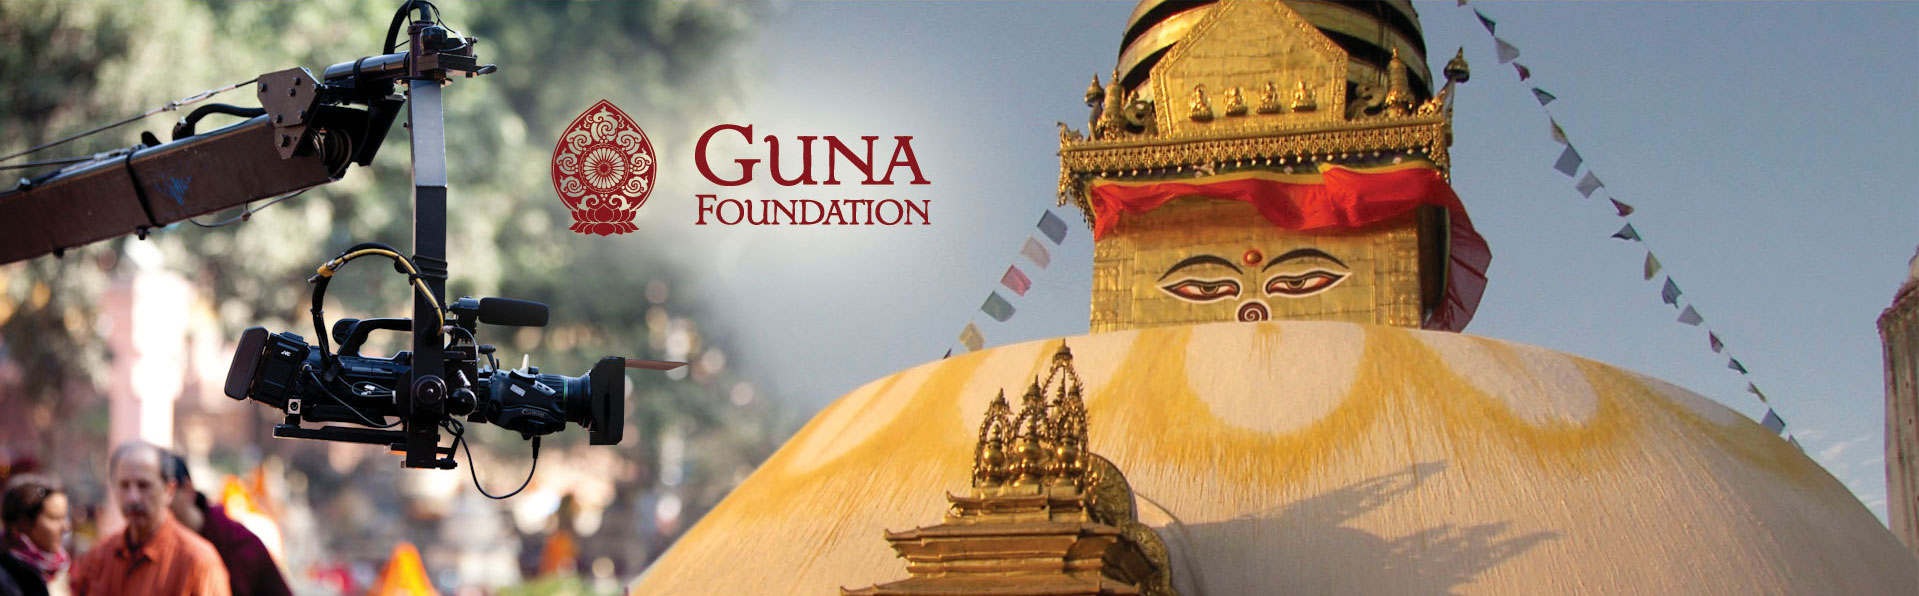 Guna Foundation